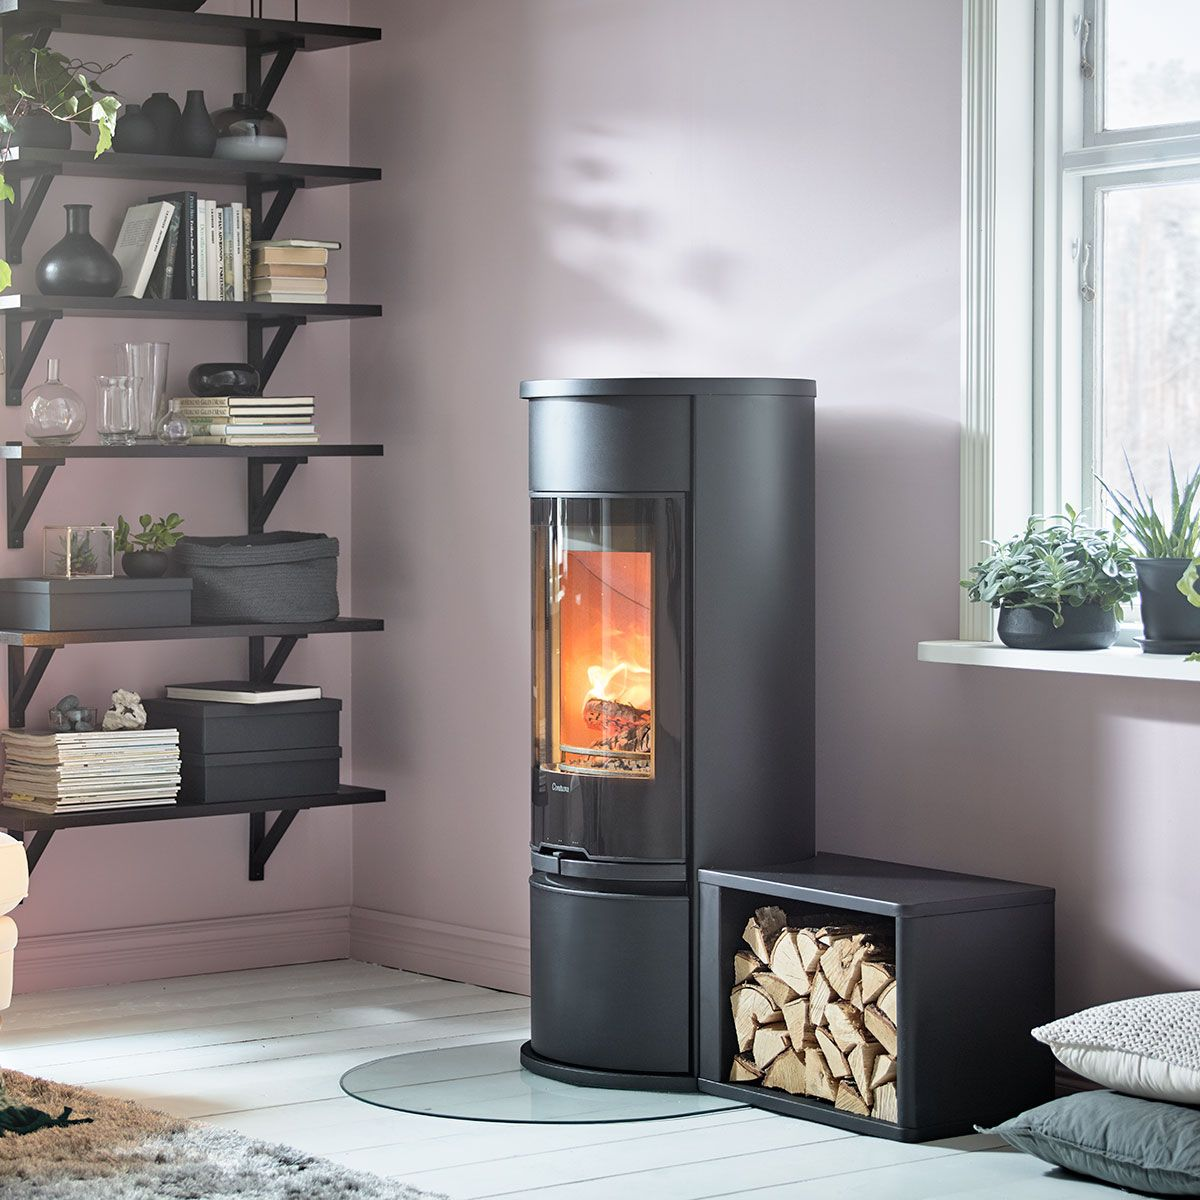 Contura 610 style is the smallest model in the grown up 600 series contura 610 style is the smallest model in the grown up 600 series here with glass door and a freestanding log storage planetlyrics Image collections